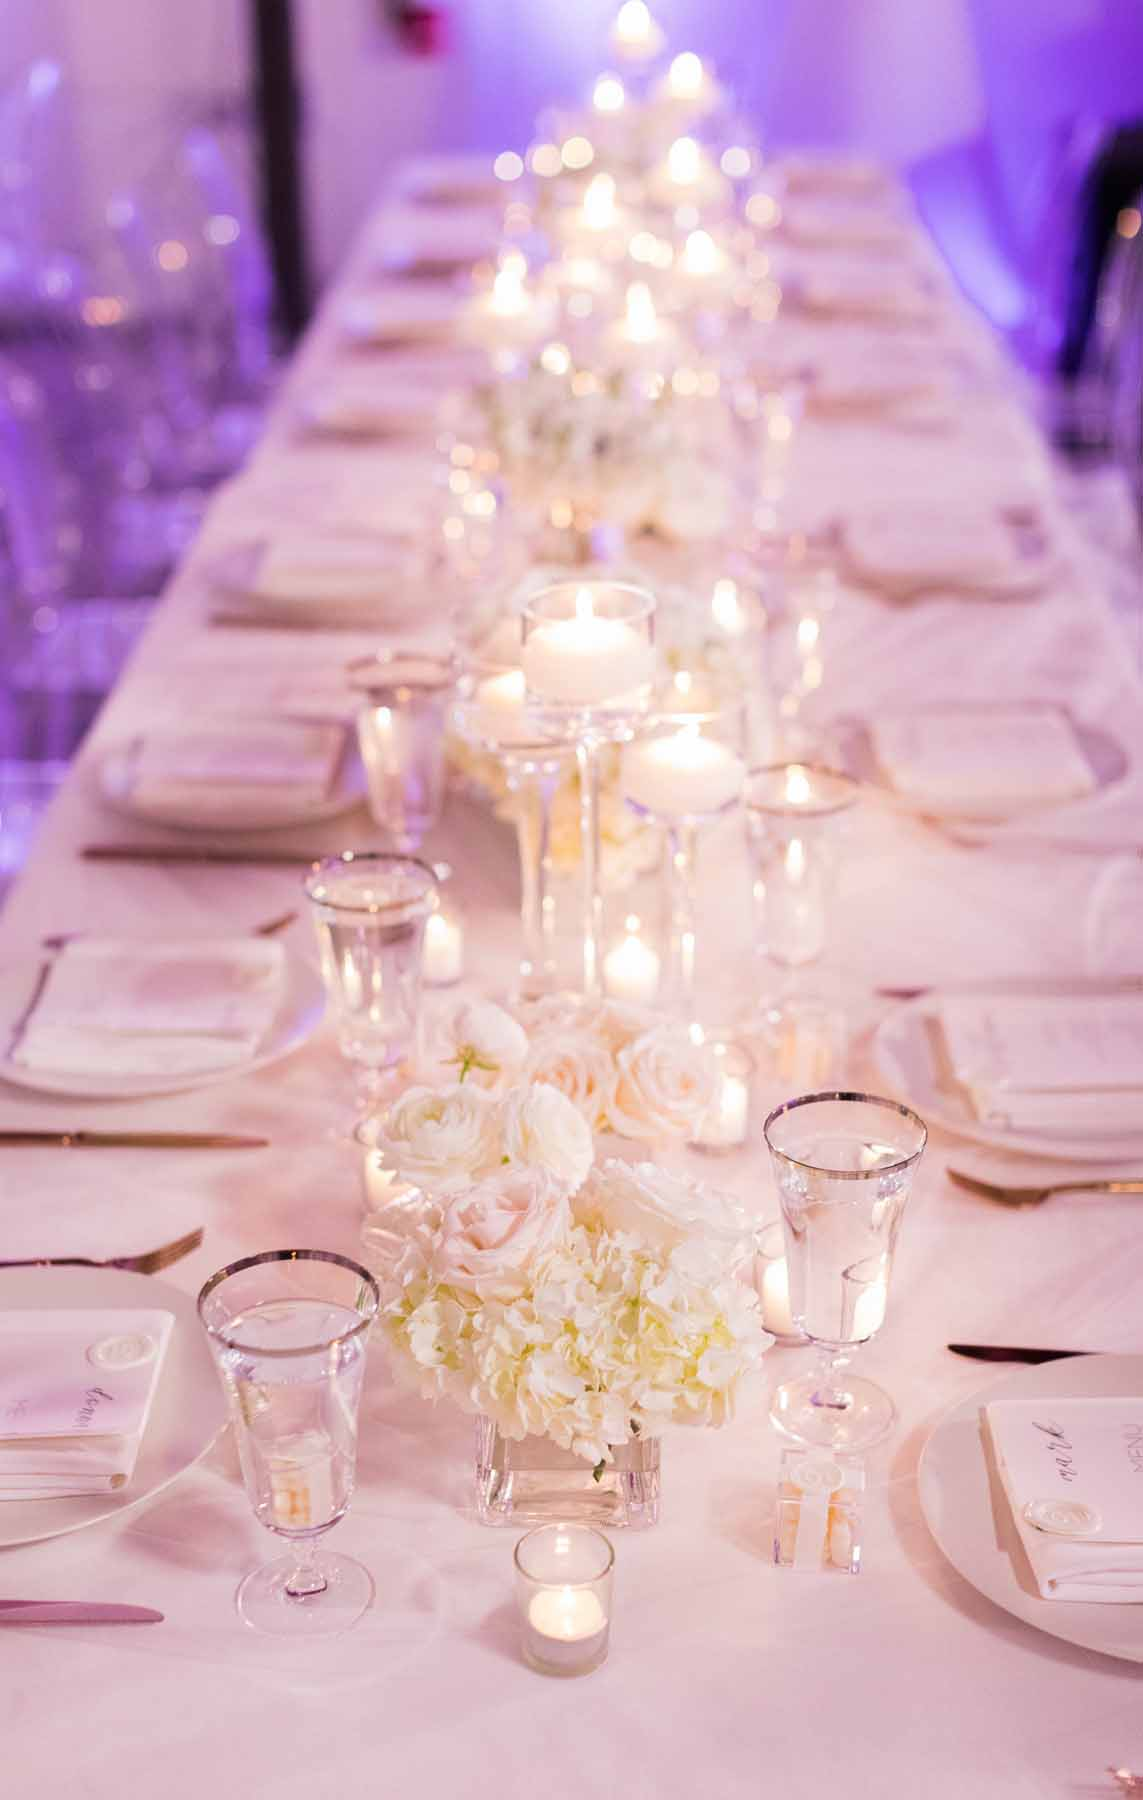 Long wedding reception table lined with white flowers and candles - Flora Nova Design